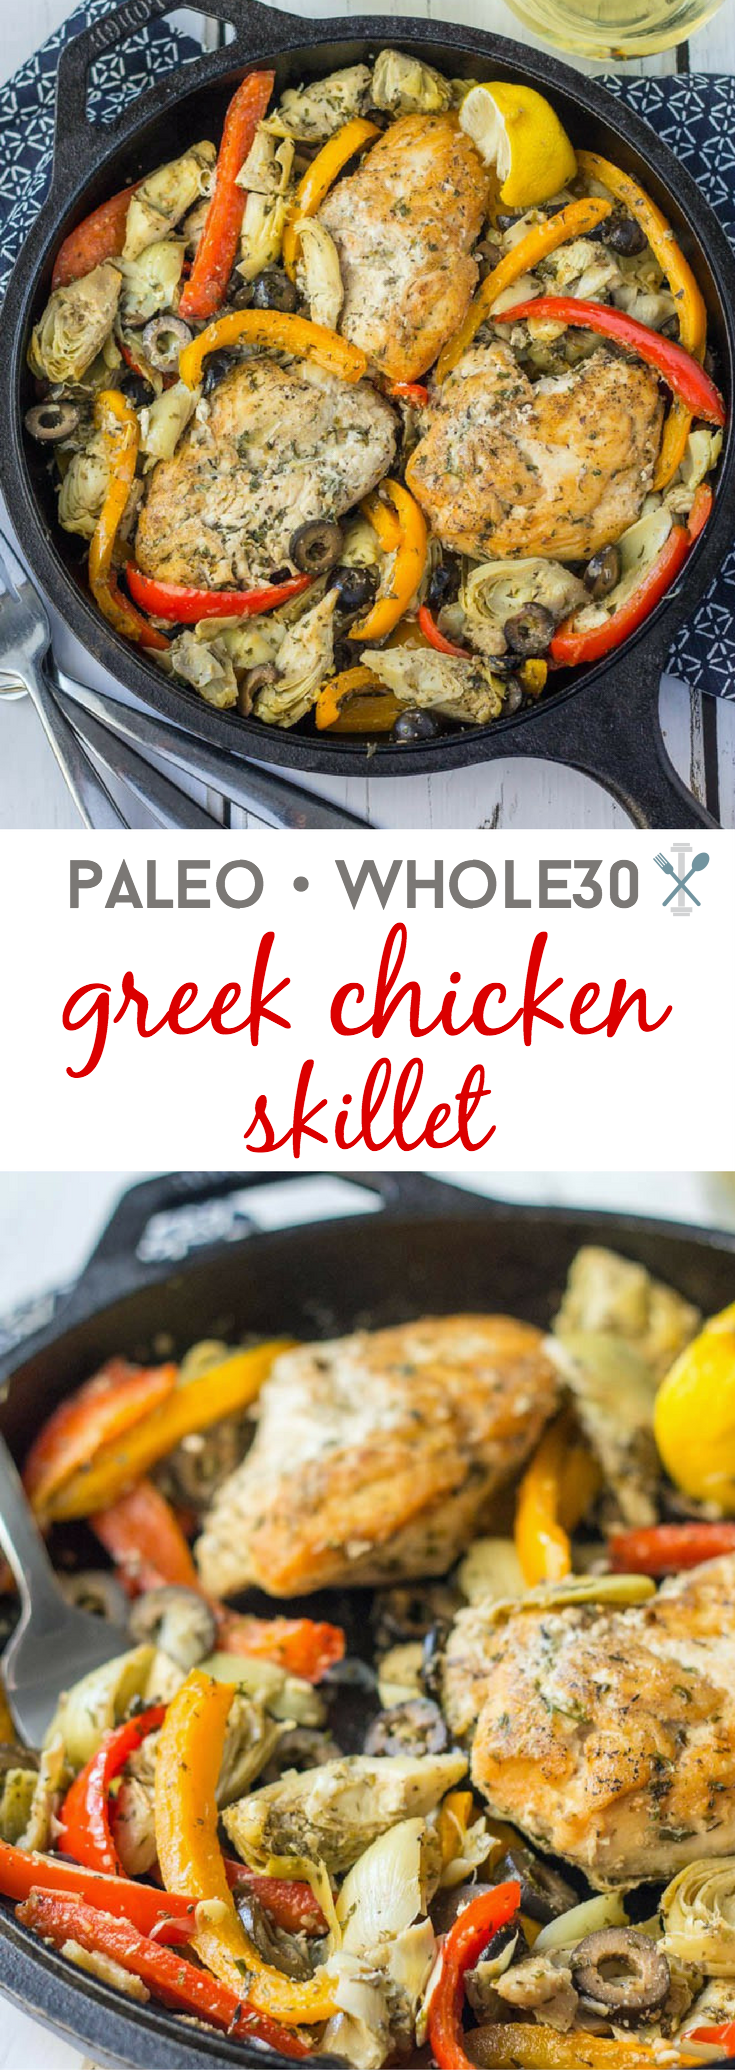 Easy paleo greek chicken skillet paleo whole30 compliant greek chicken skillet forumfinder